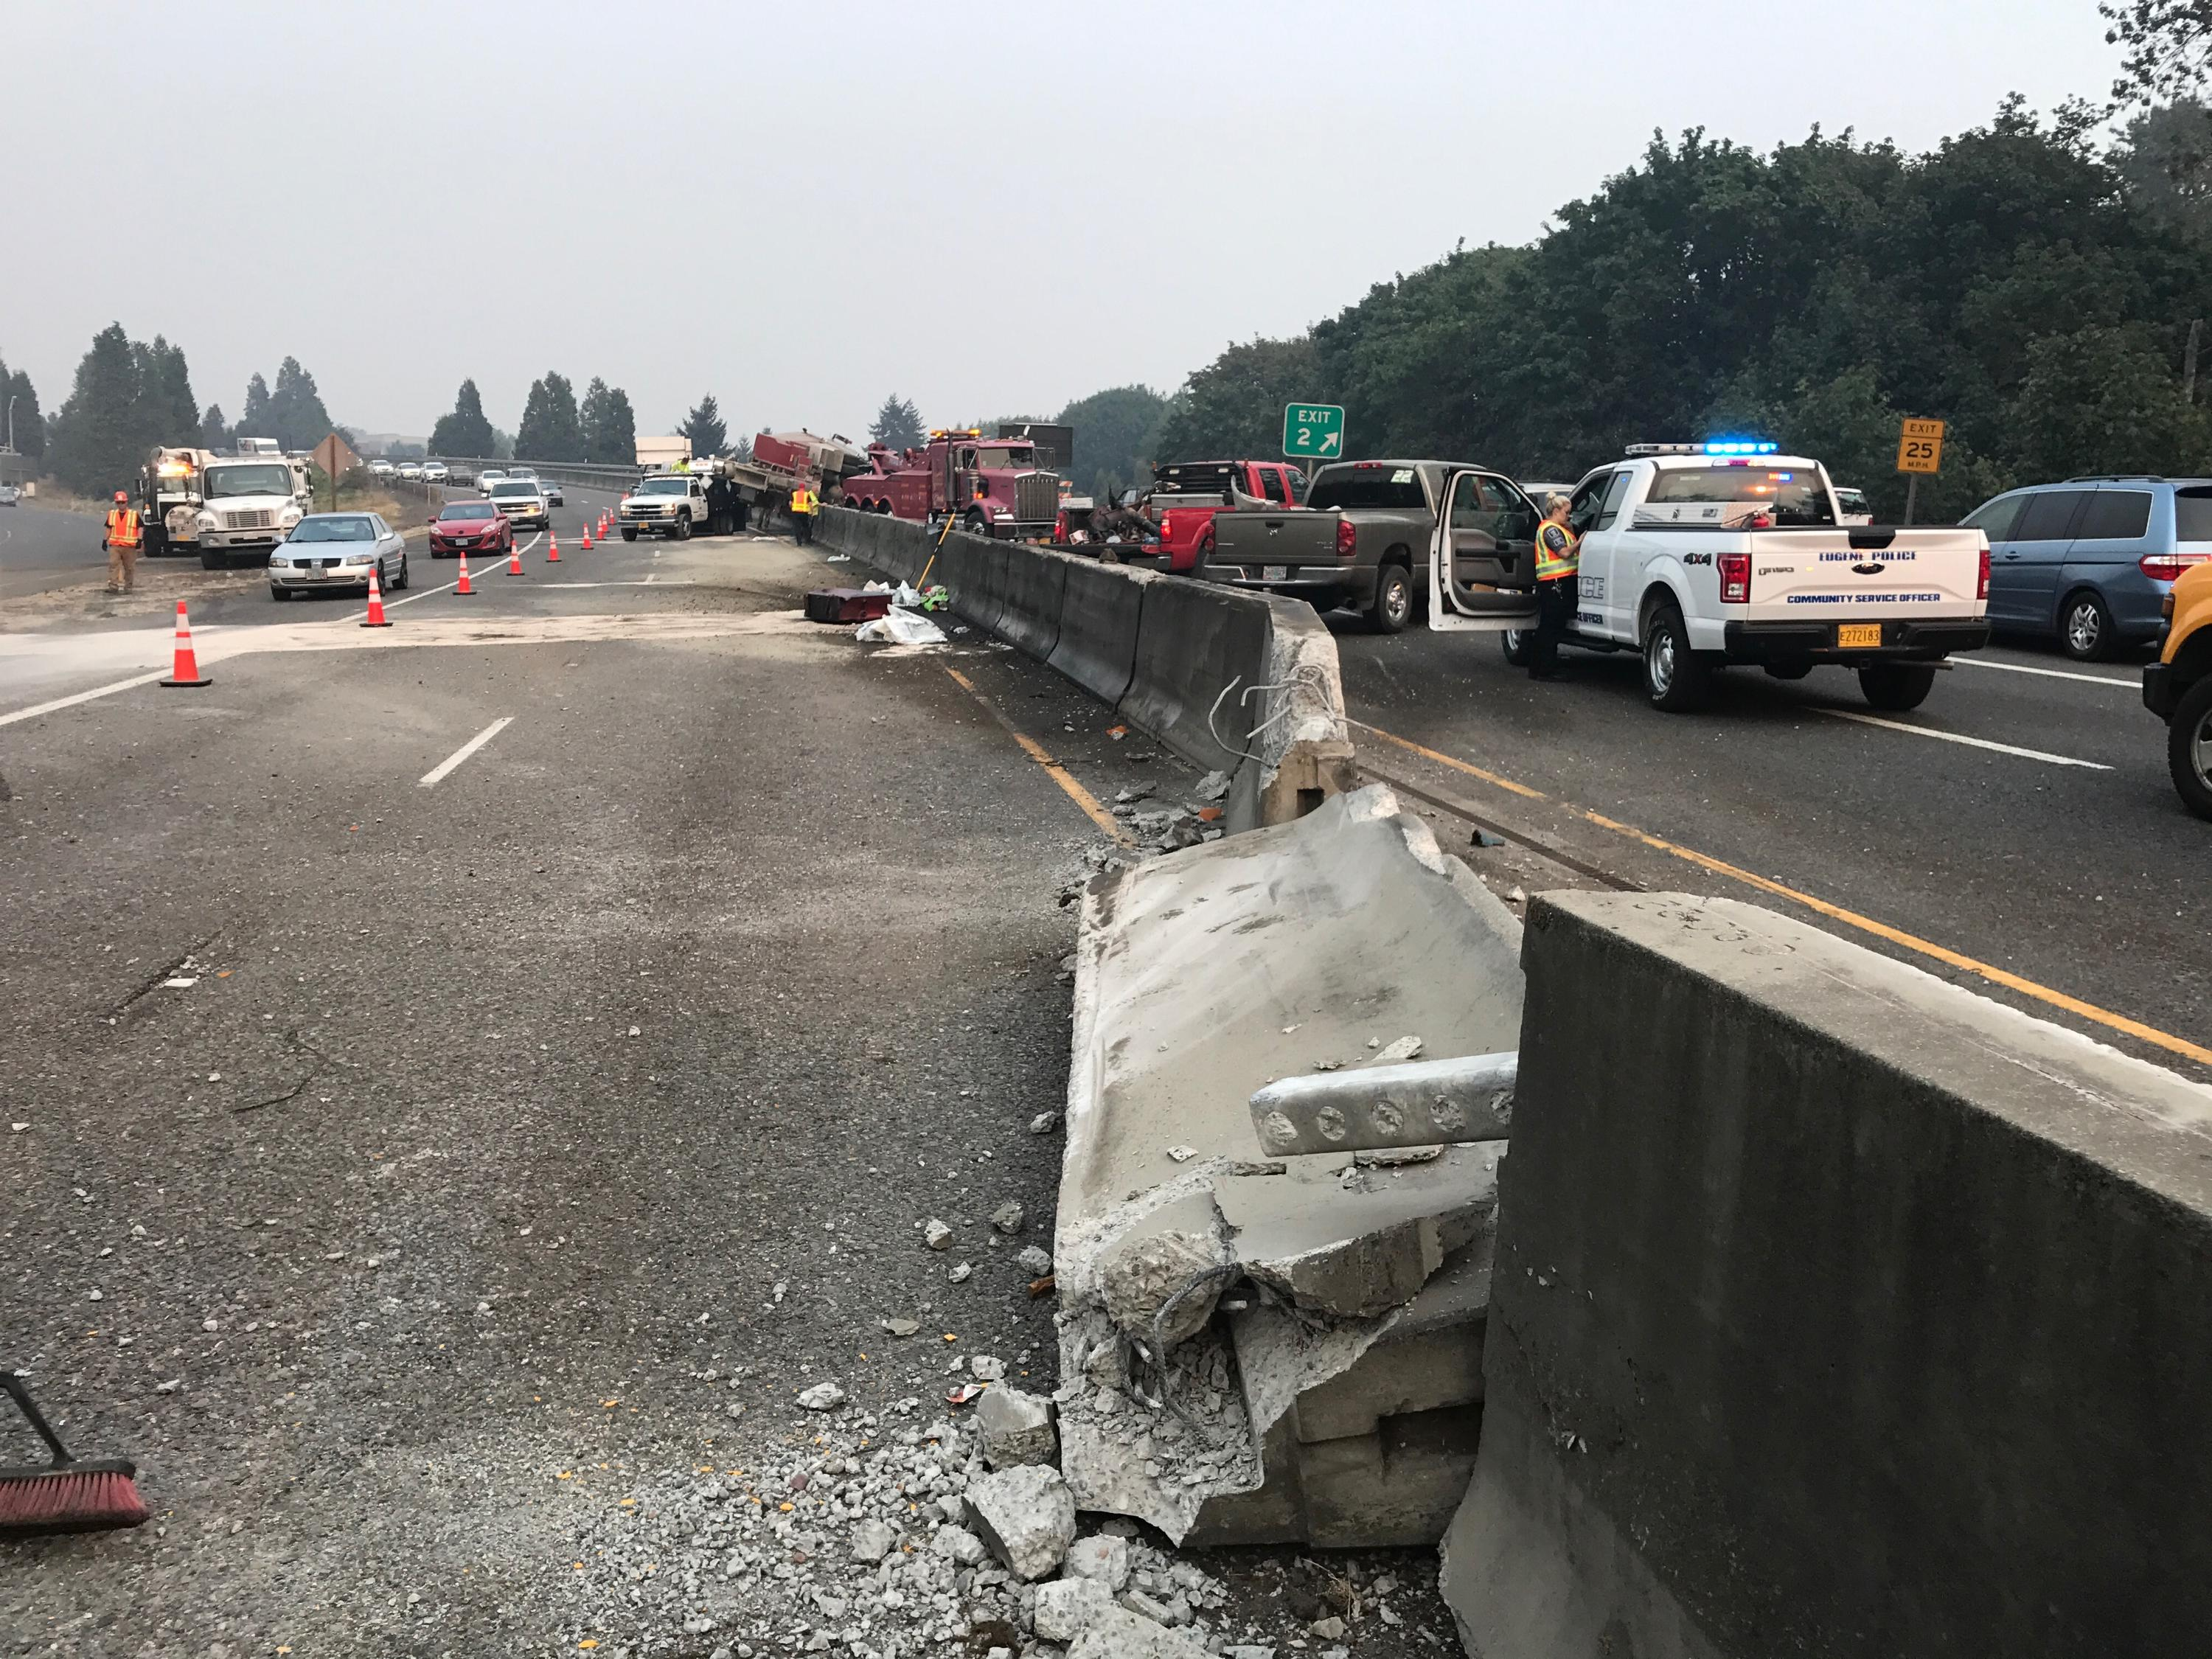 I-105 crash delayed traffic in Lane County, August 28, 2017. (ODOT photo)